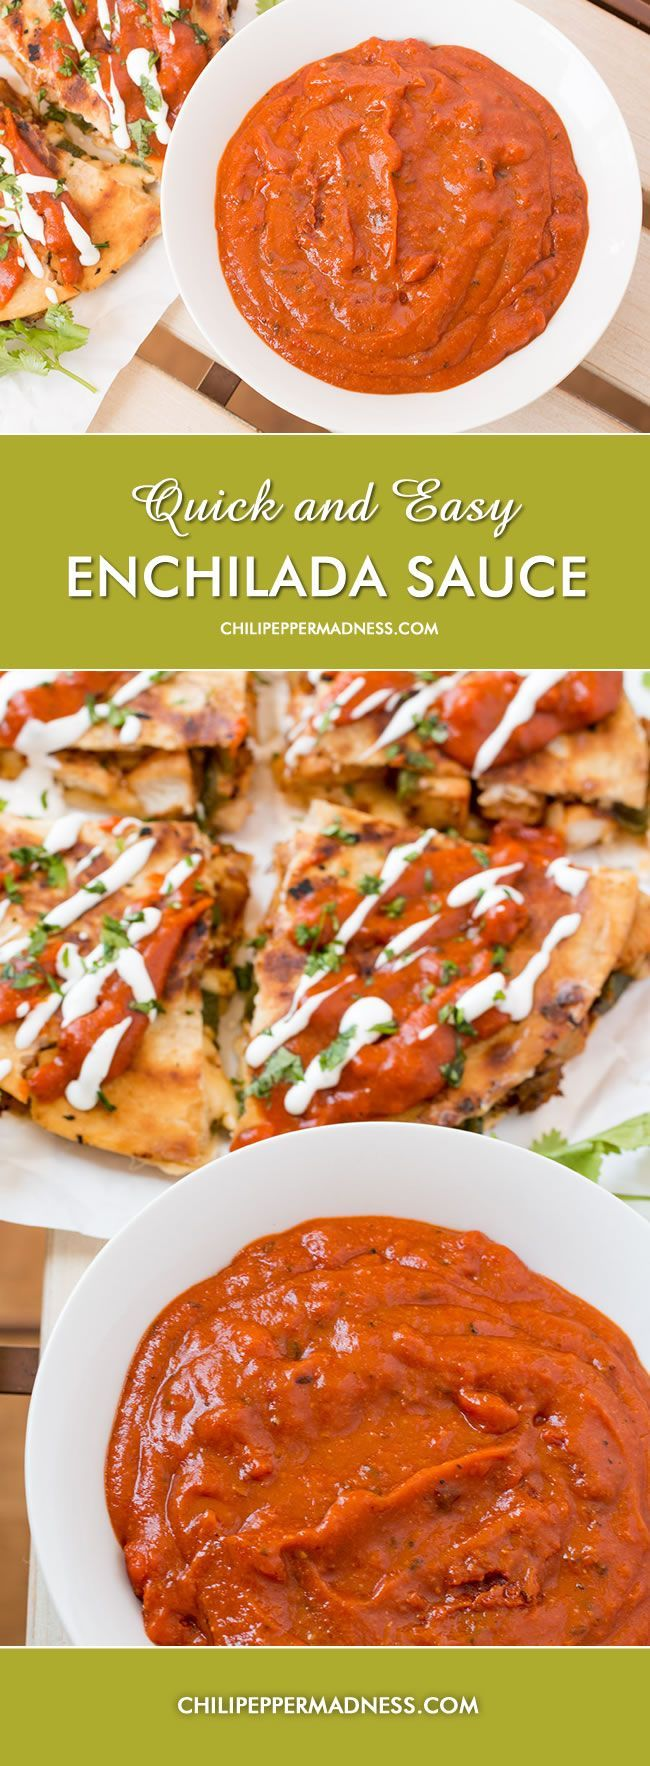 Quick and Easy Enchilada Sauce from Chili Pepper Madness